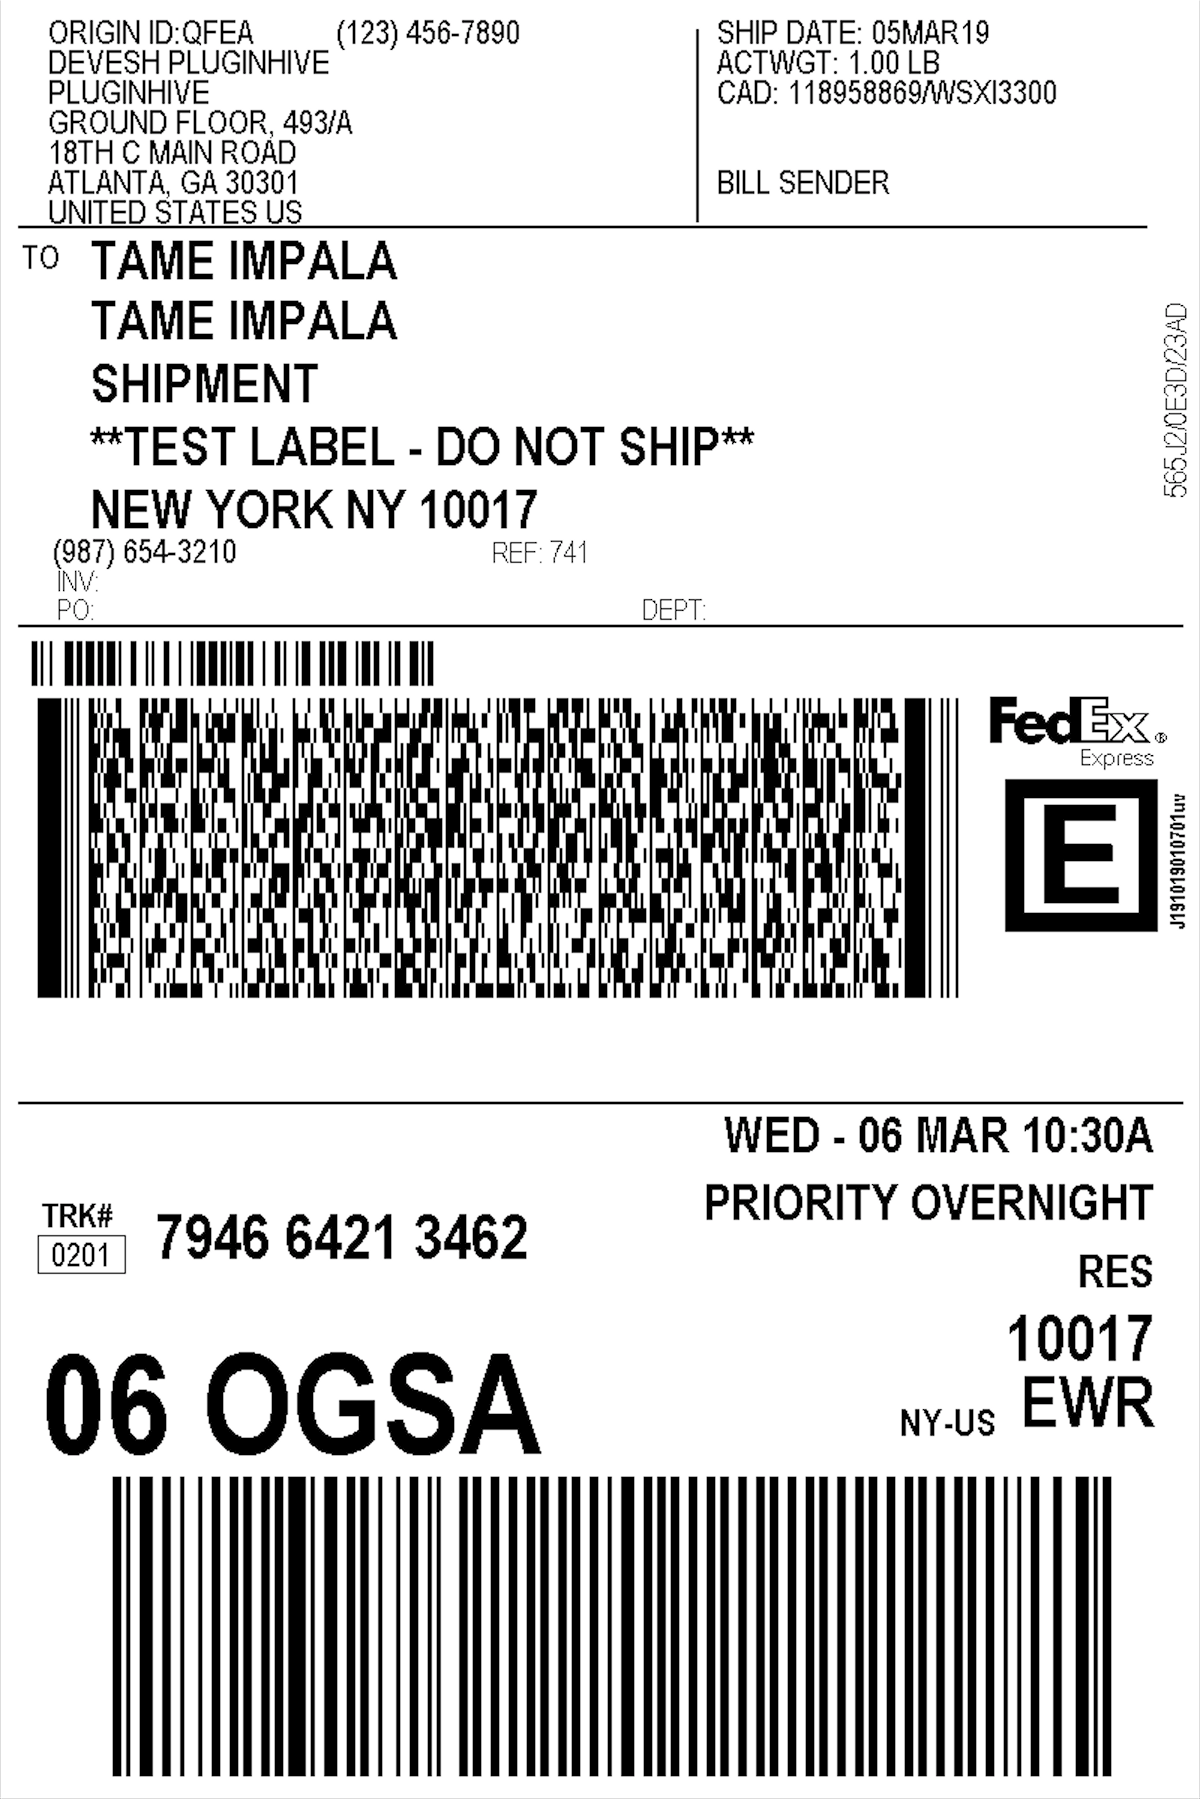 fedex_express_shipping_label